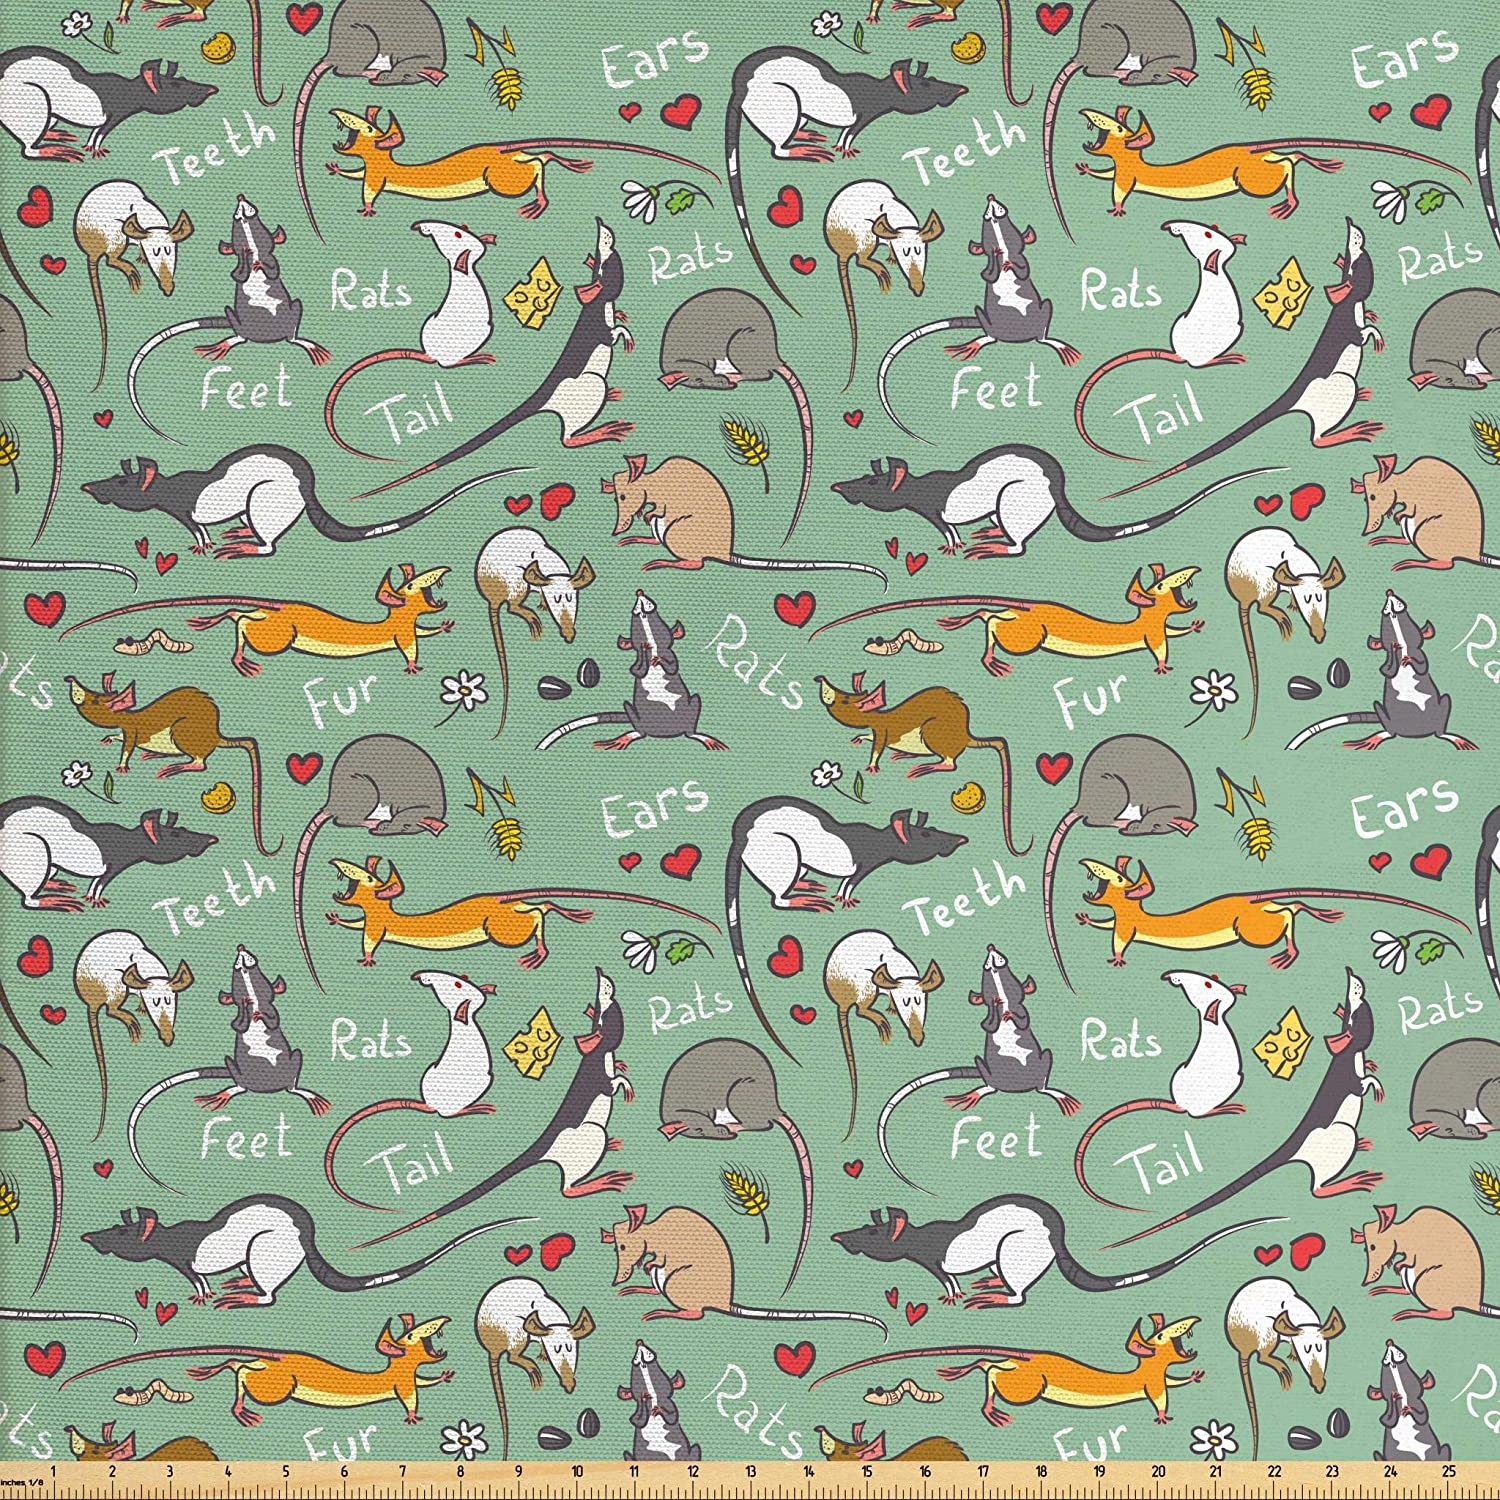 Lunarable Animals Fabric by The Yard, Cartoon Rats with Hearts Tail Teeth Feet and Ears Lettering Urban Wildlife, Decorative Fabric for Upholstery and Home Accents, 2 Yards, Dark Seafoam